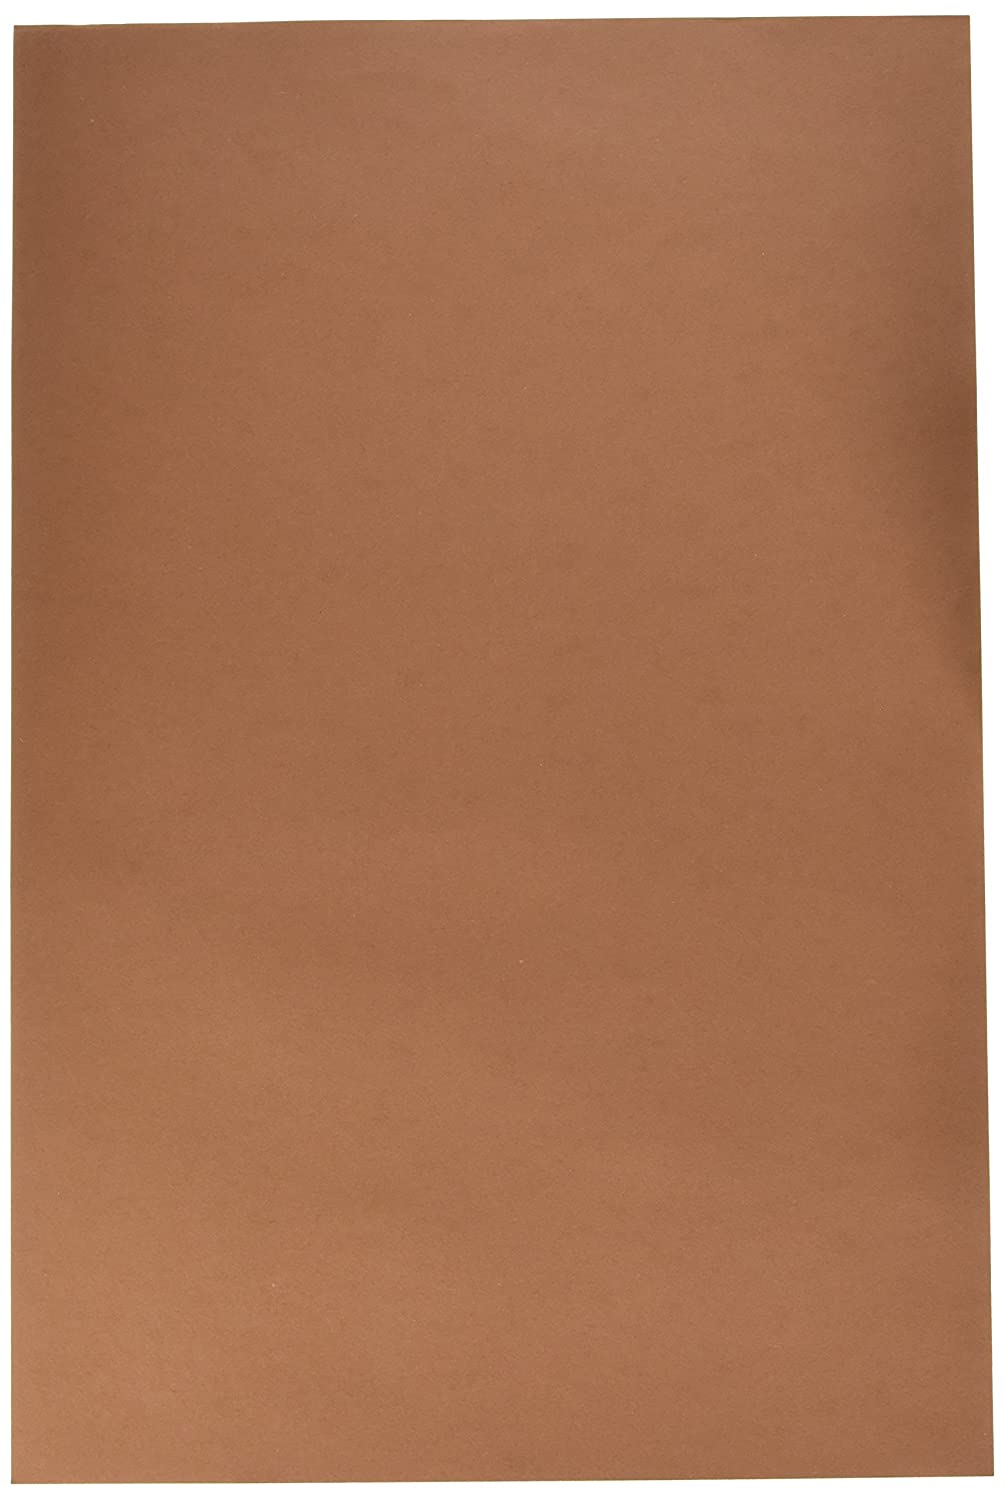 Tru-Ray Sulphite Construction Paper, 12 x 18 Inches, Warm Brown, 50 Sheets School Specialty 054138